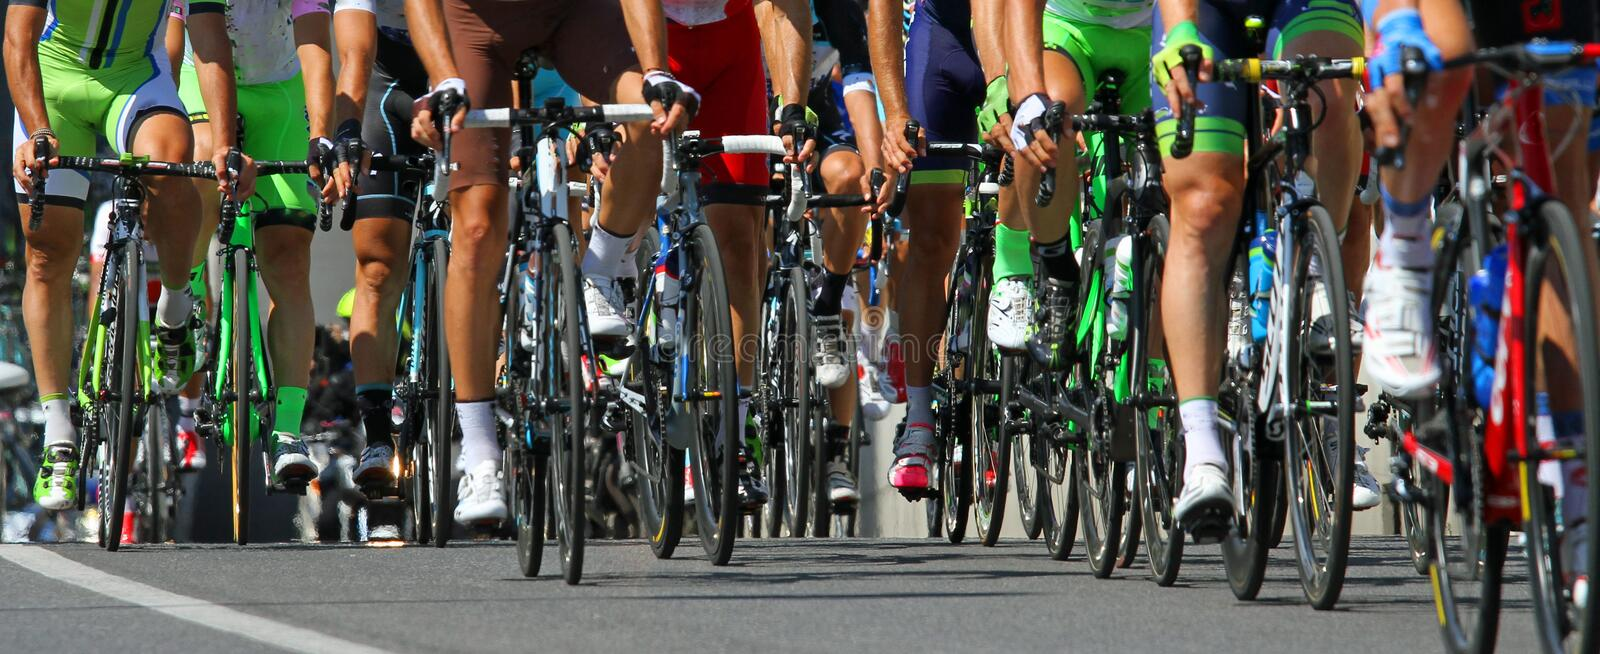 Cyclists ride during the international race royalty free stock photography